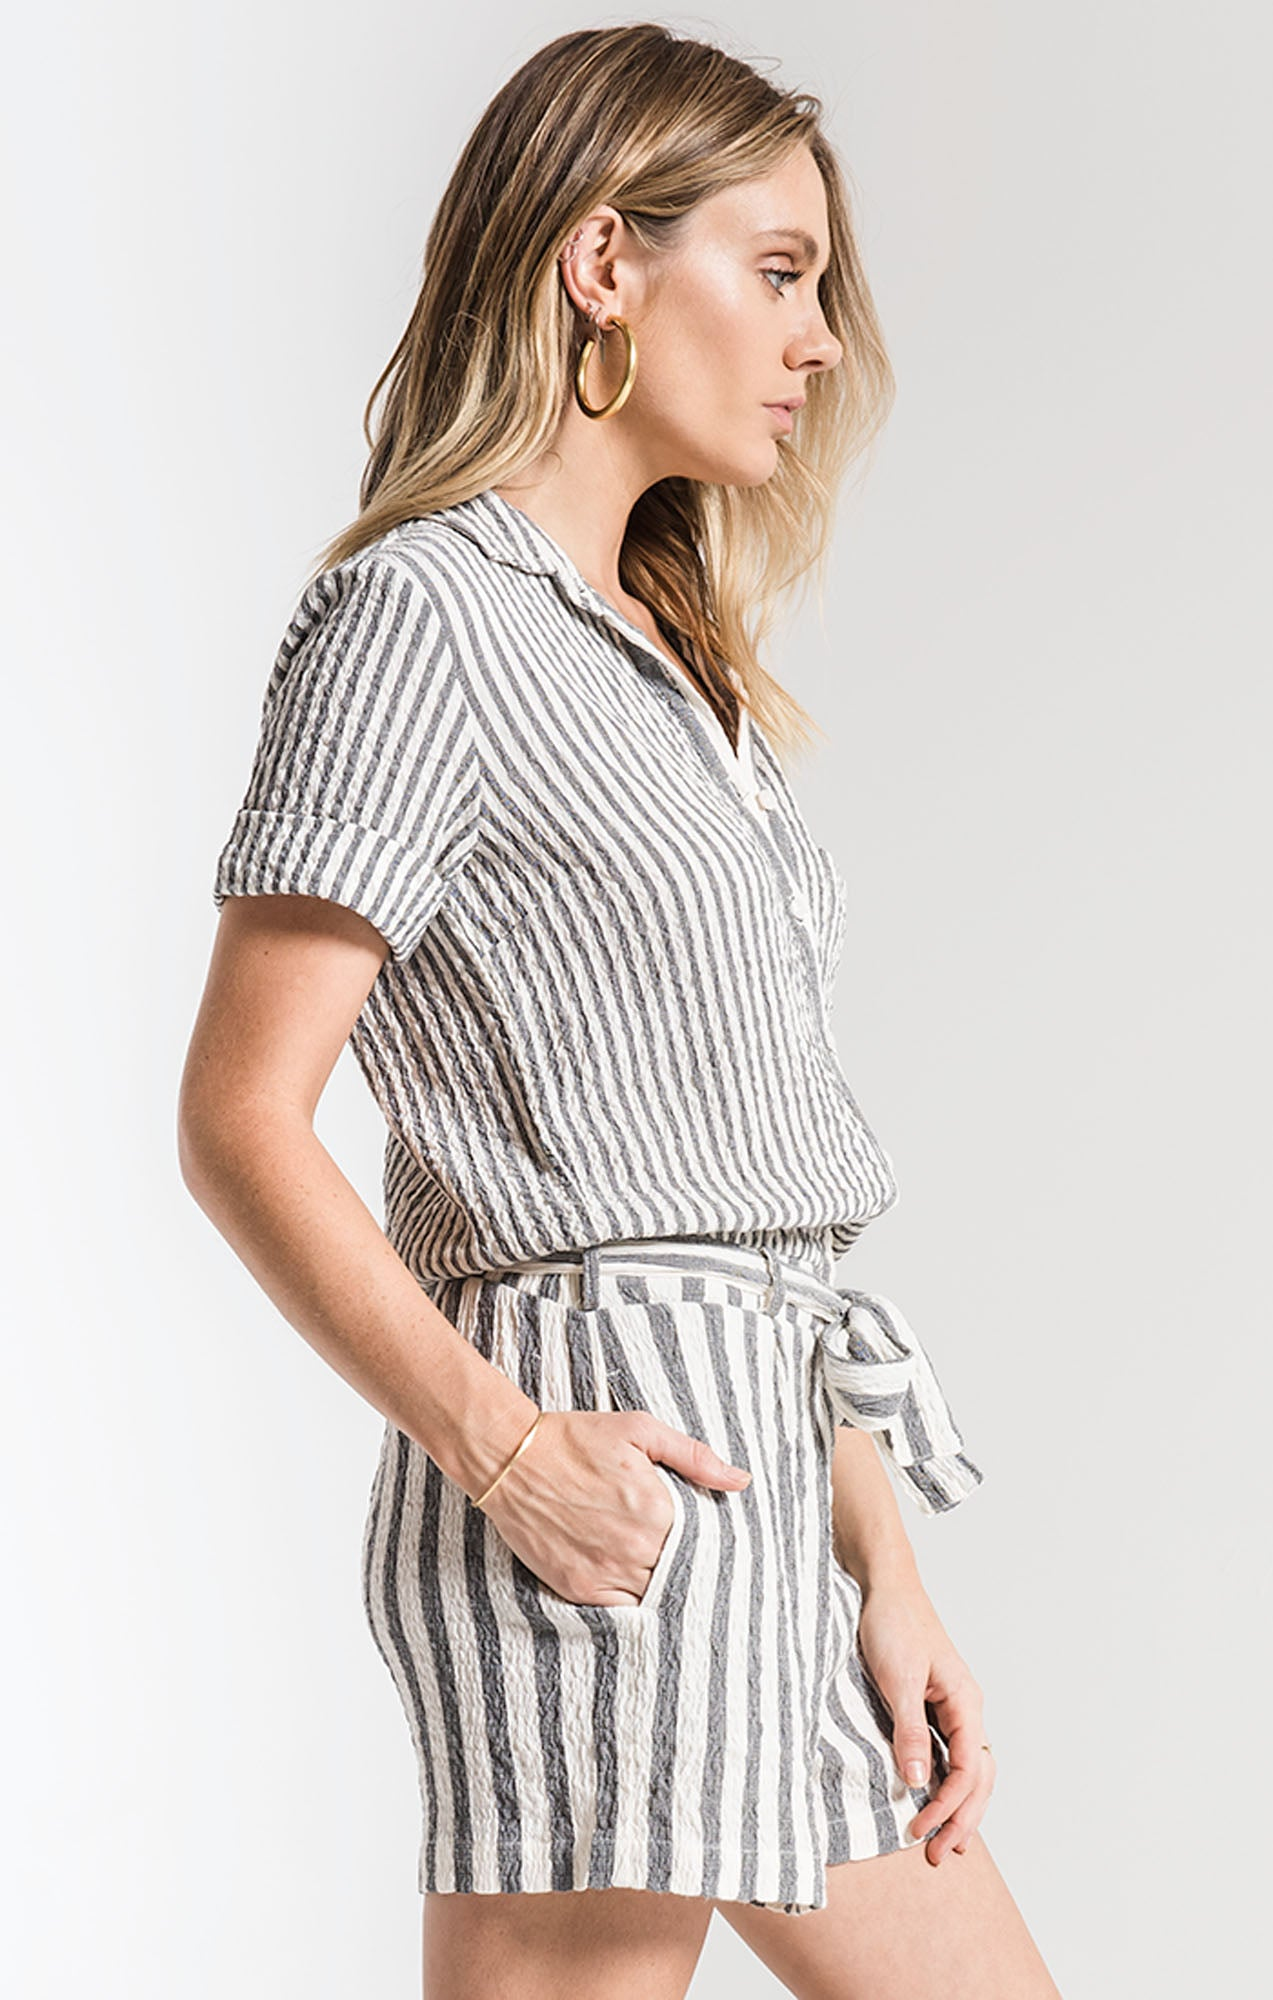 Shorts Vezelas Striped Romper By Rag Poets Black/White